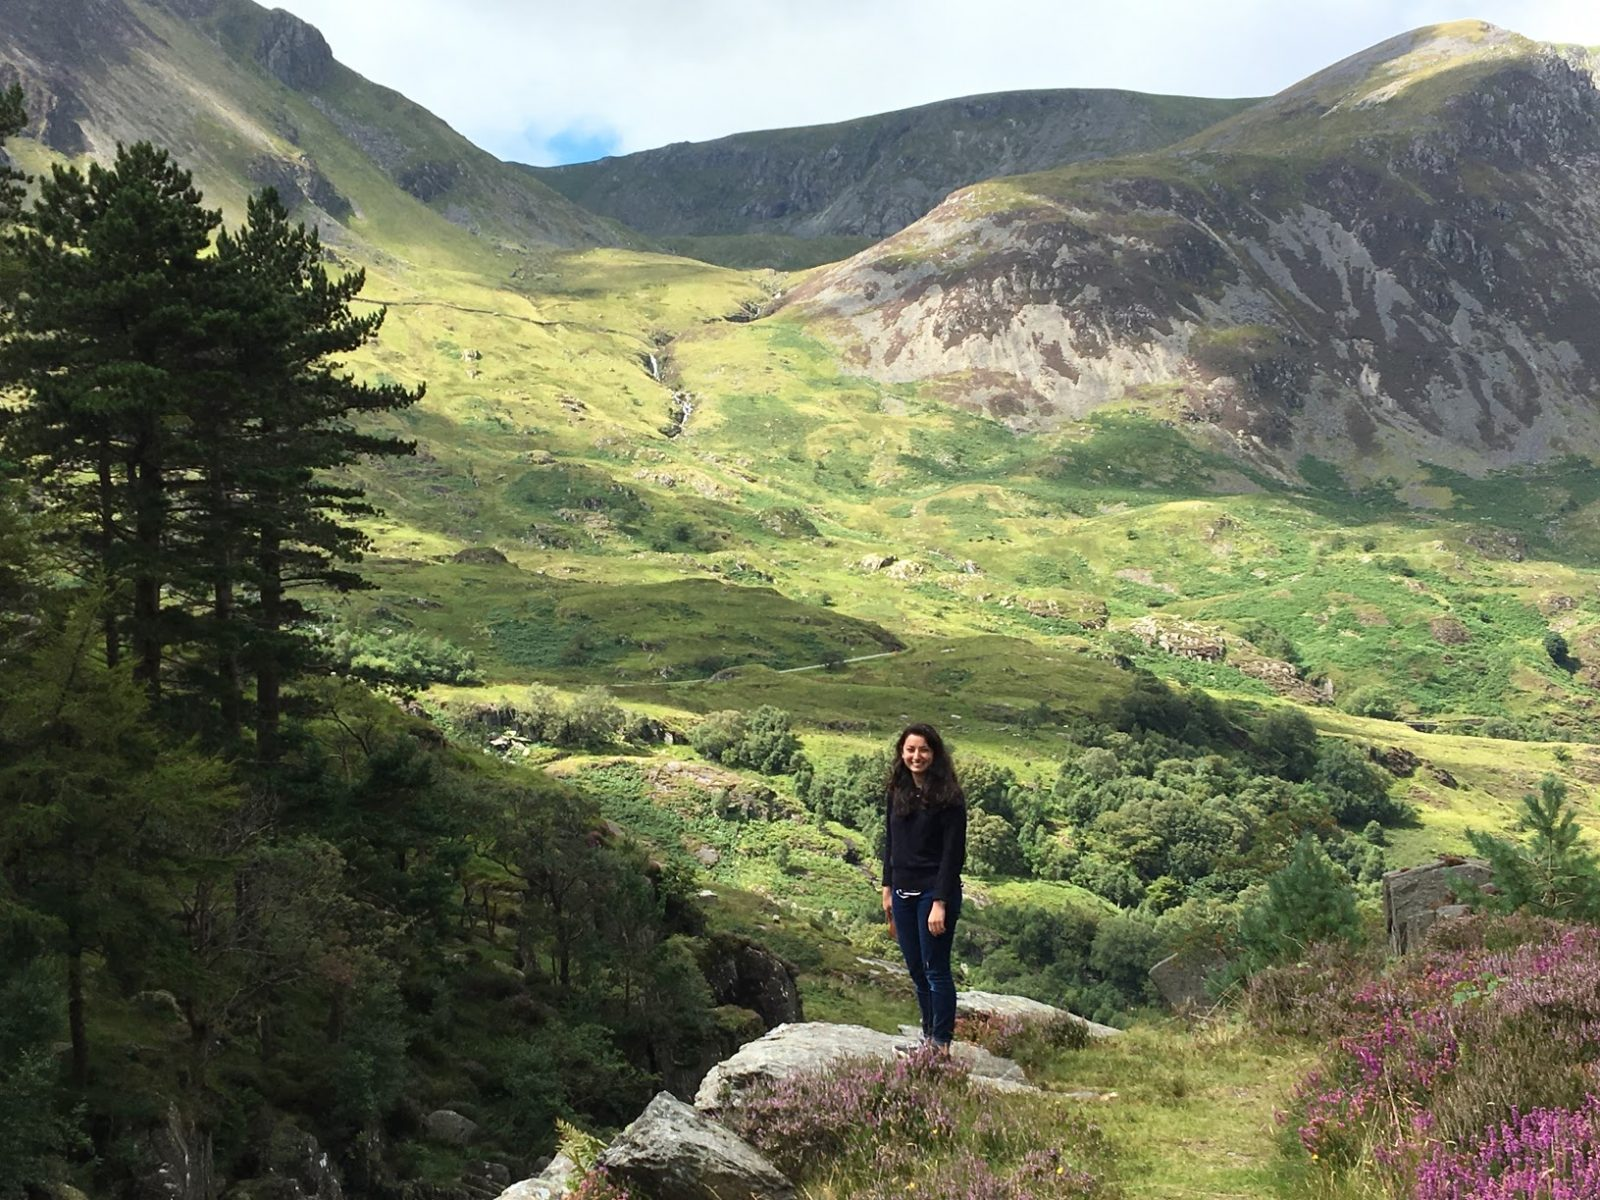 Missions in Wales: A Conversation with Joy Williams